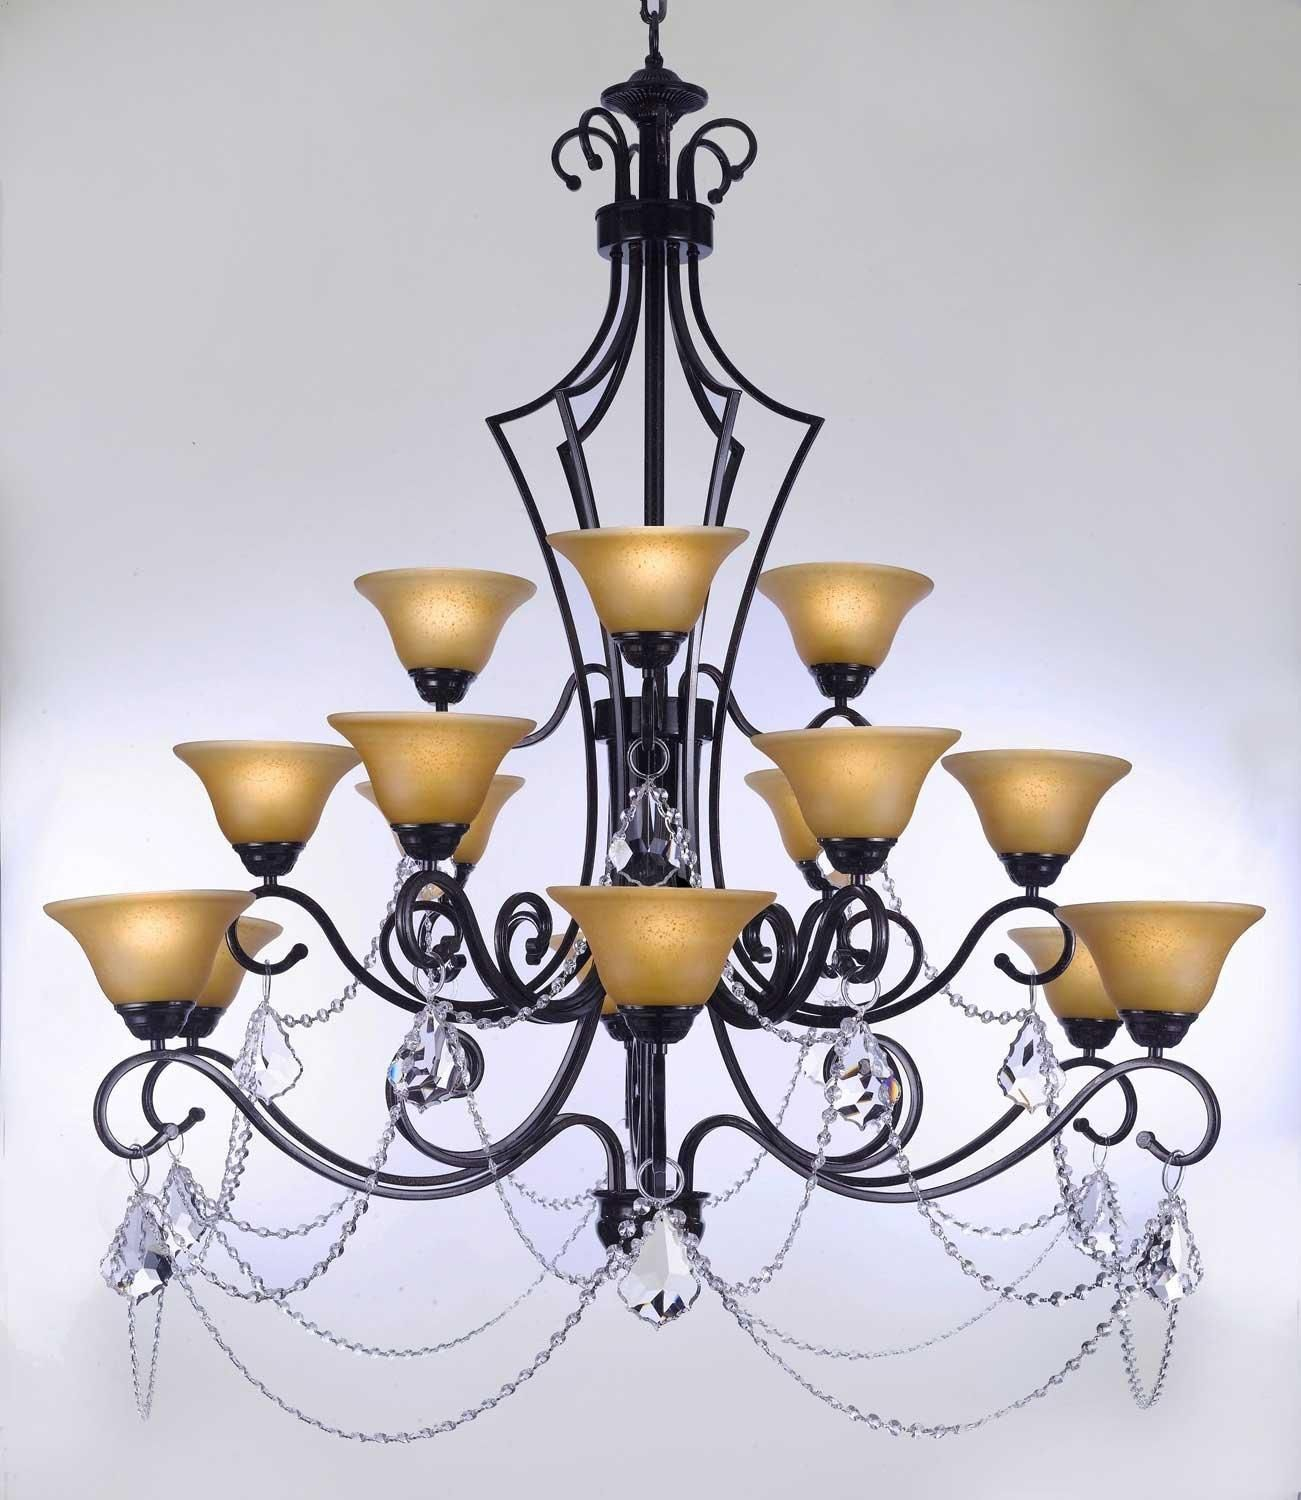 Wrought Iron Chandelier Lighting With Crystal H51 x W49 Perfect